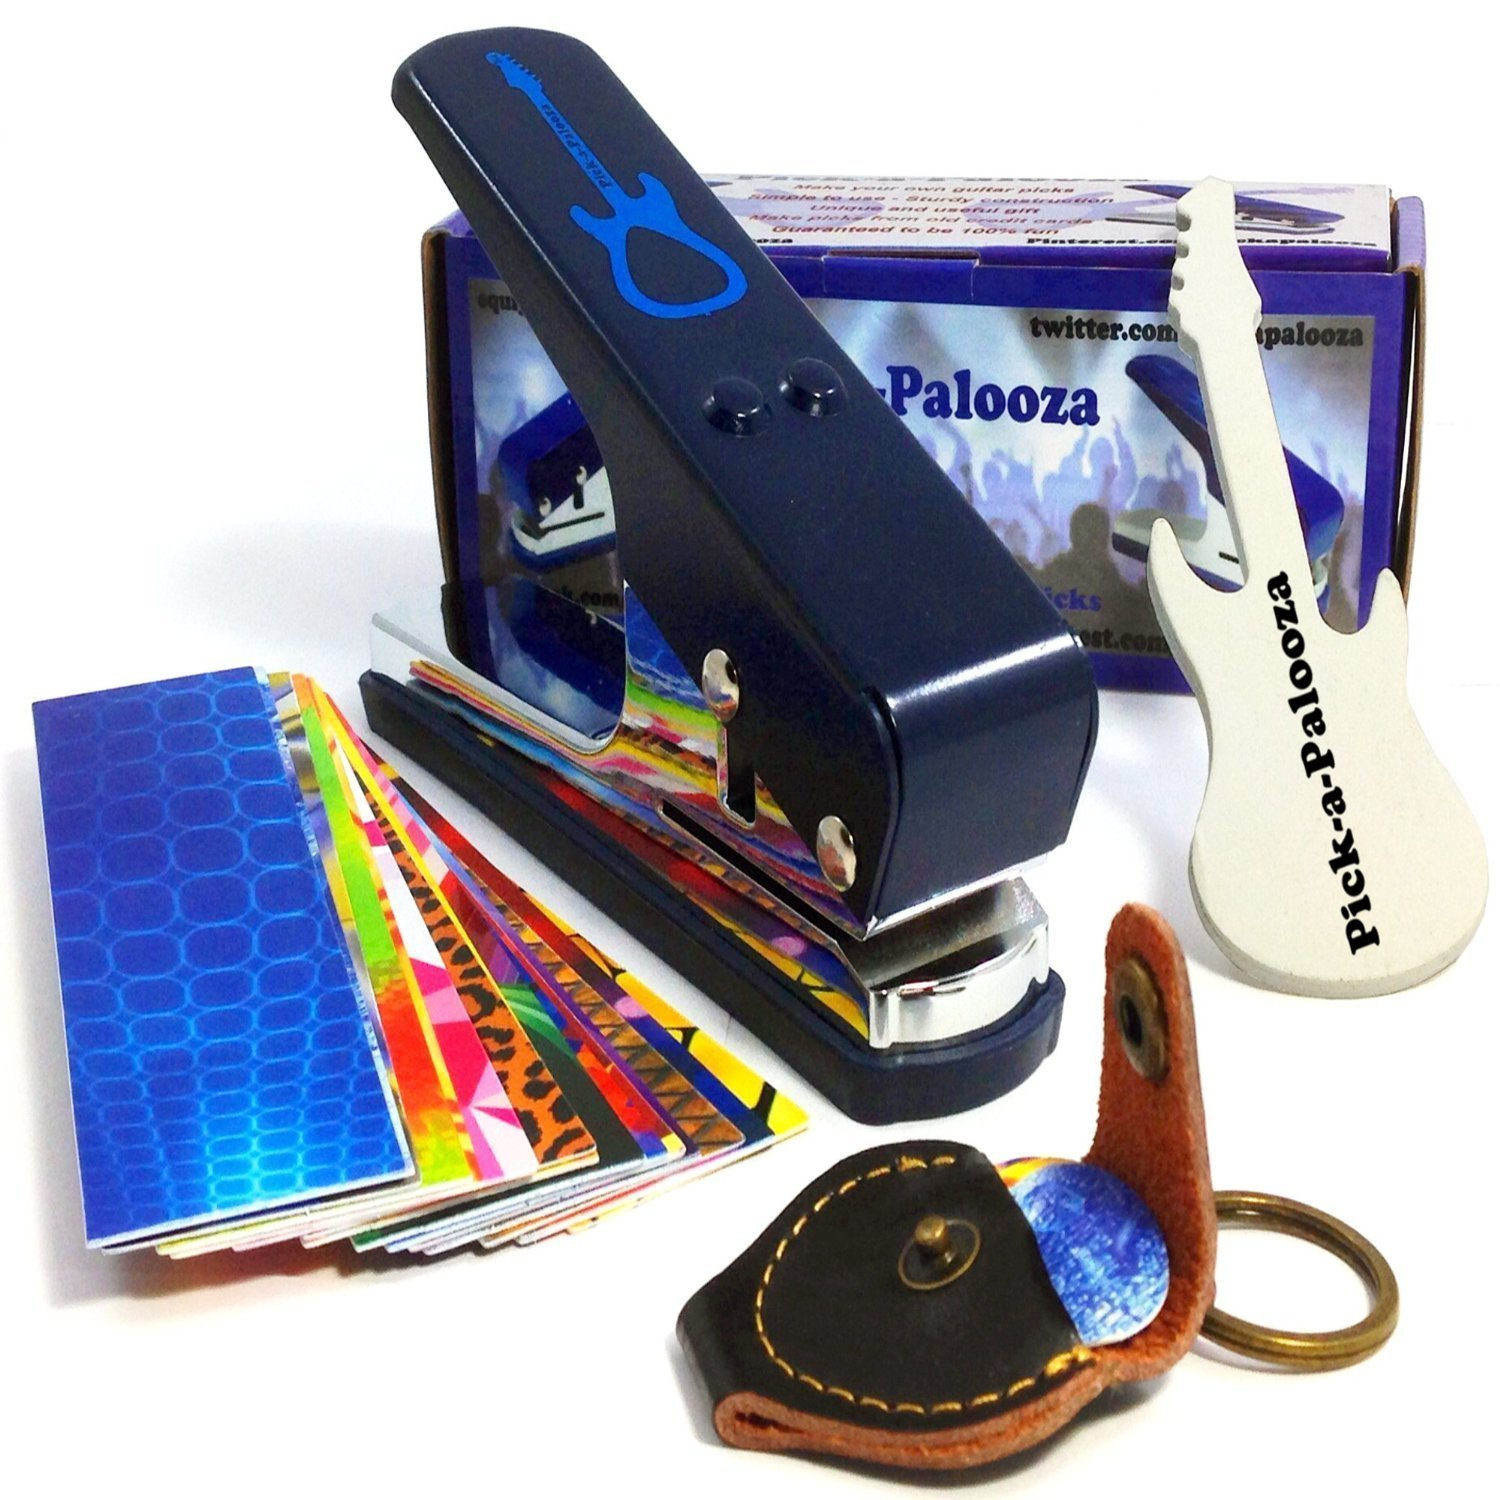 Pick-a-Palooza DIY Guitar Pick Punch Mega Gift Pack - the Premium Pick Maker - Leather Key Chain Pick Holder, 15 Pick Strips and a Guitar File - Blue by Pick-A-Palooza